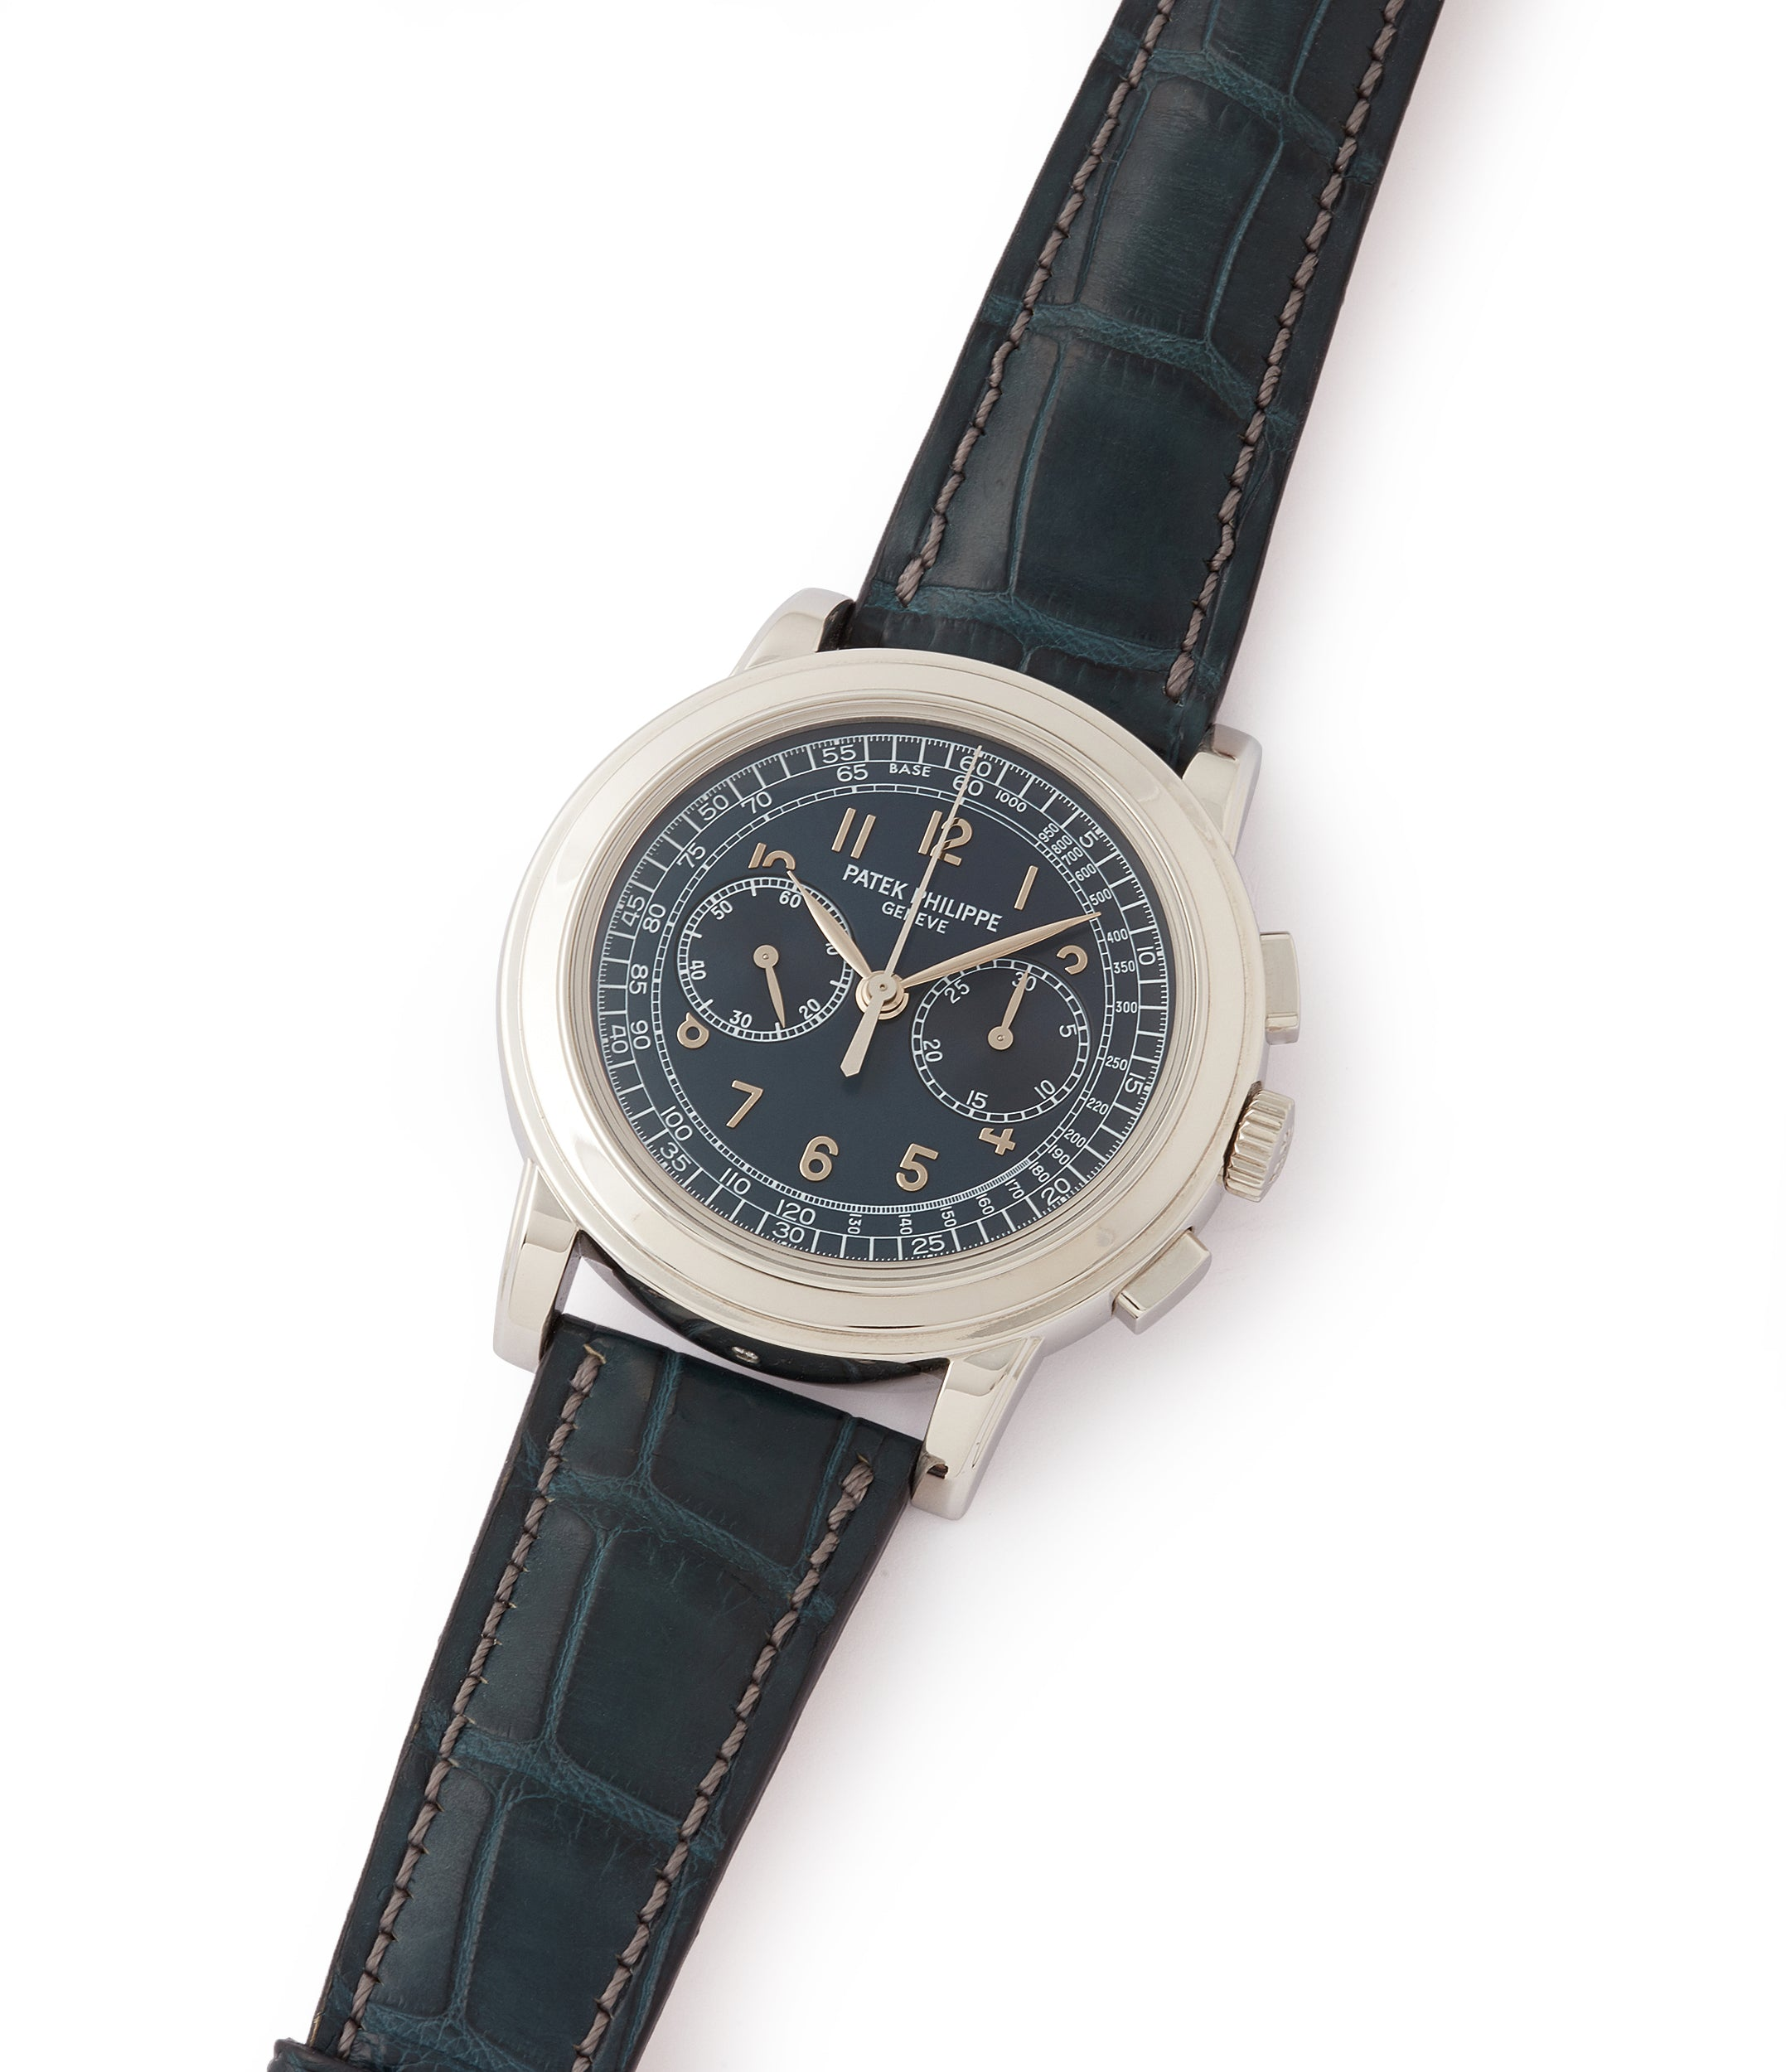 sell rare Patek Philippe 5070P Chronograph rare platinum 42mm luxury watch for sale online at A Collected Man London UK specialist of rare watches